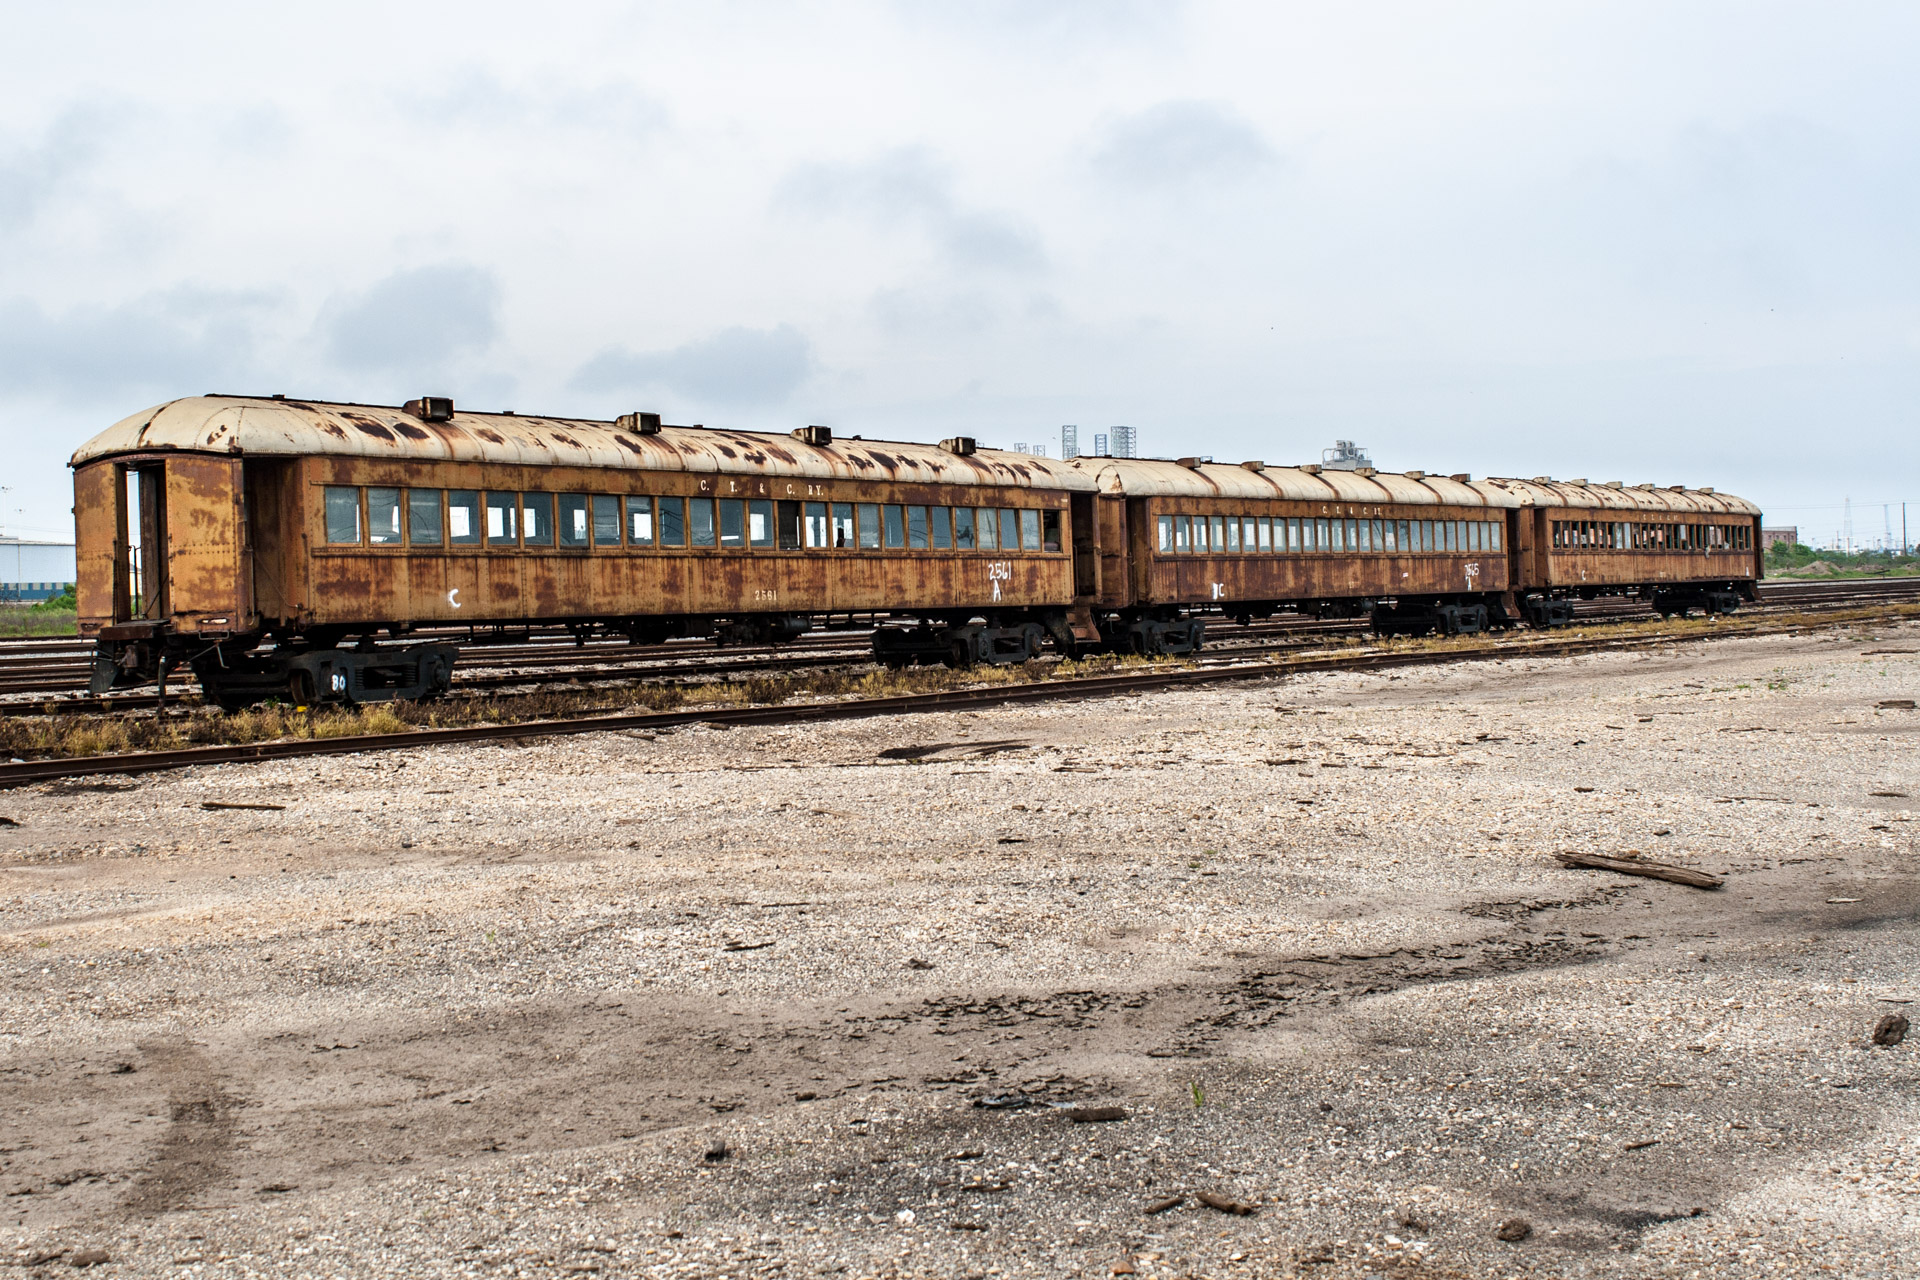 Galveston, Texas - Last Stop Passenger Train Car